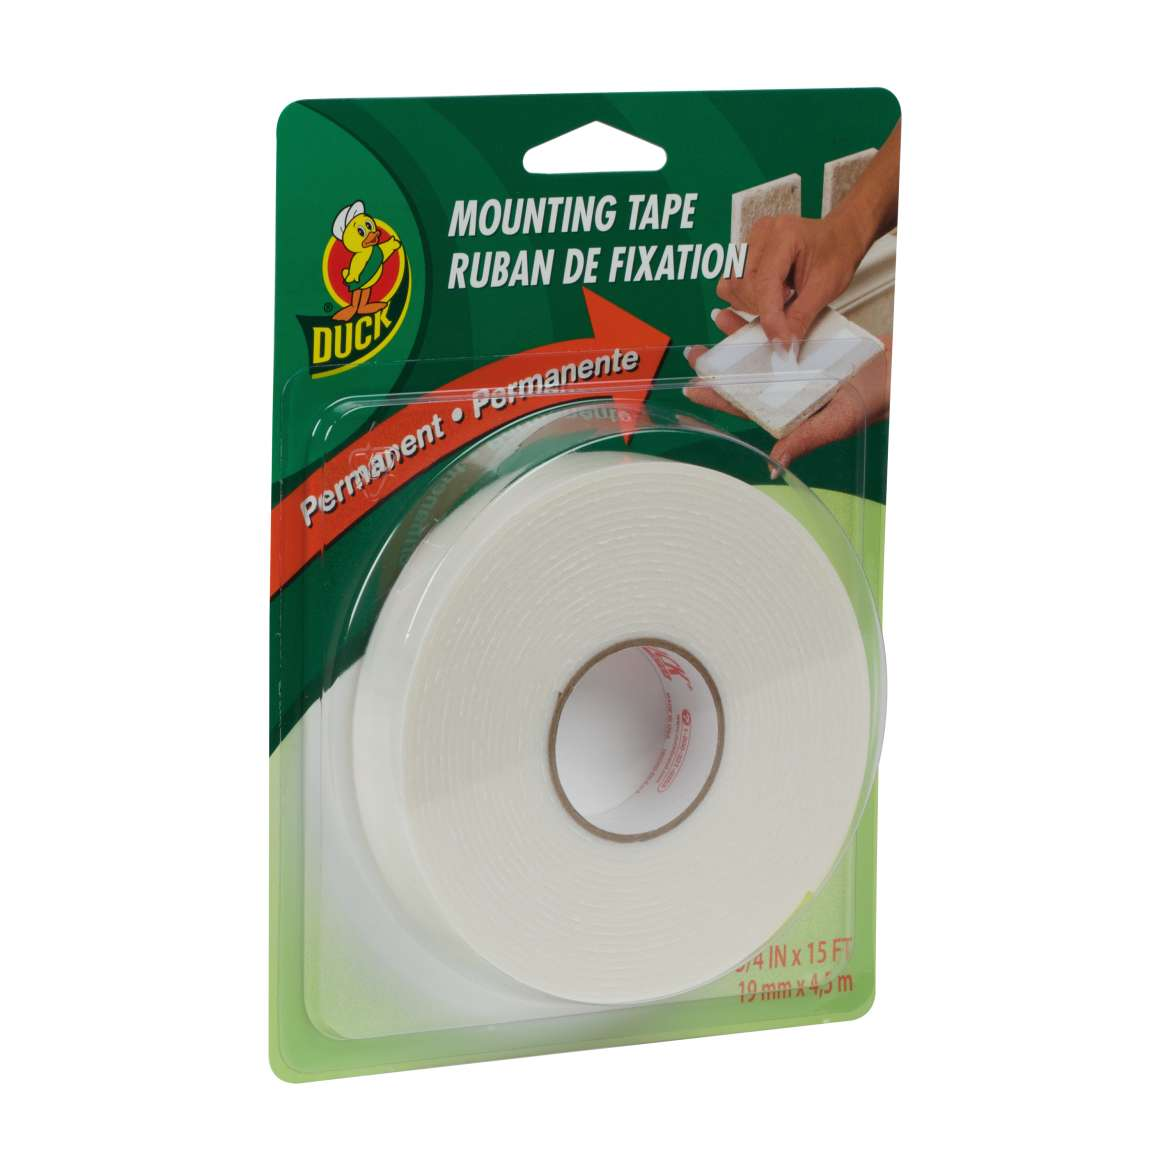 Duck® Brand Permanent Mounting Tape - White, .75 in. x 15 ft. Image